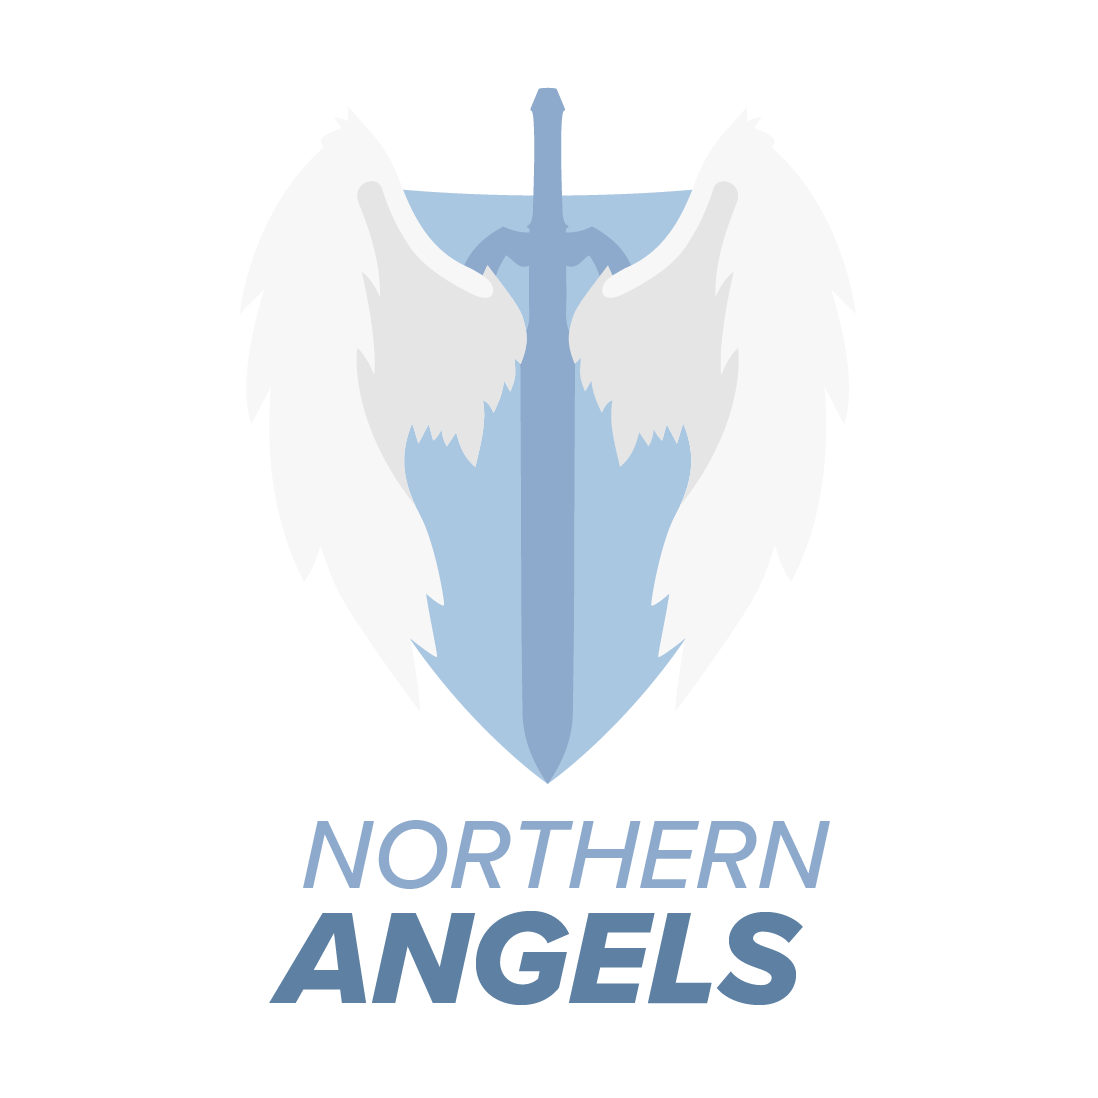 Northern Angels